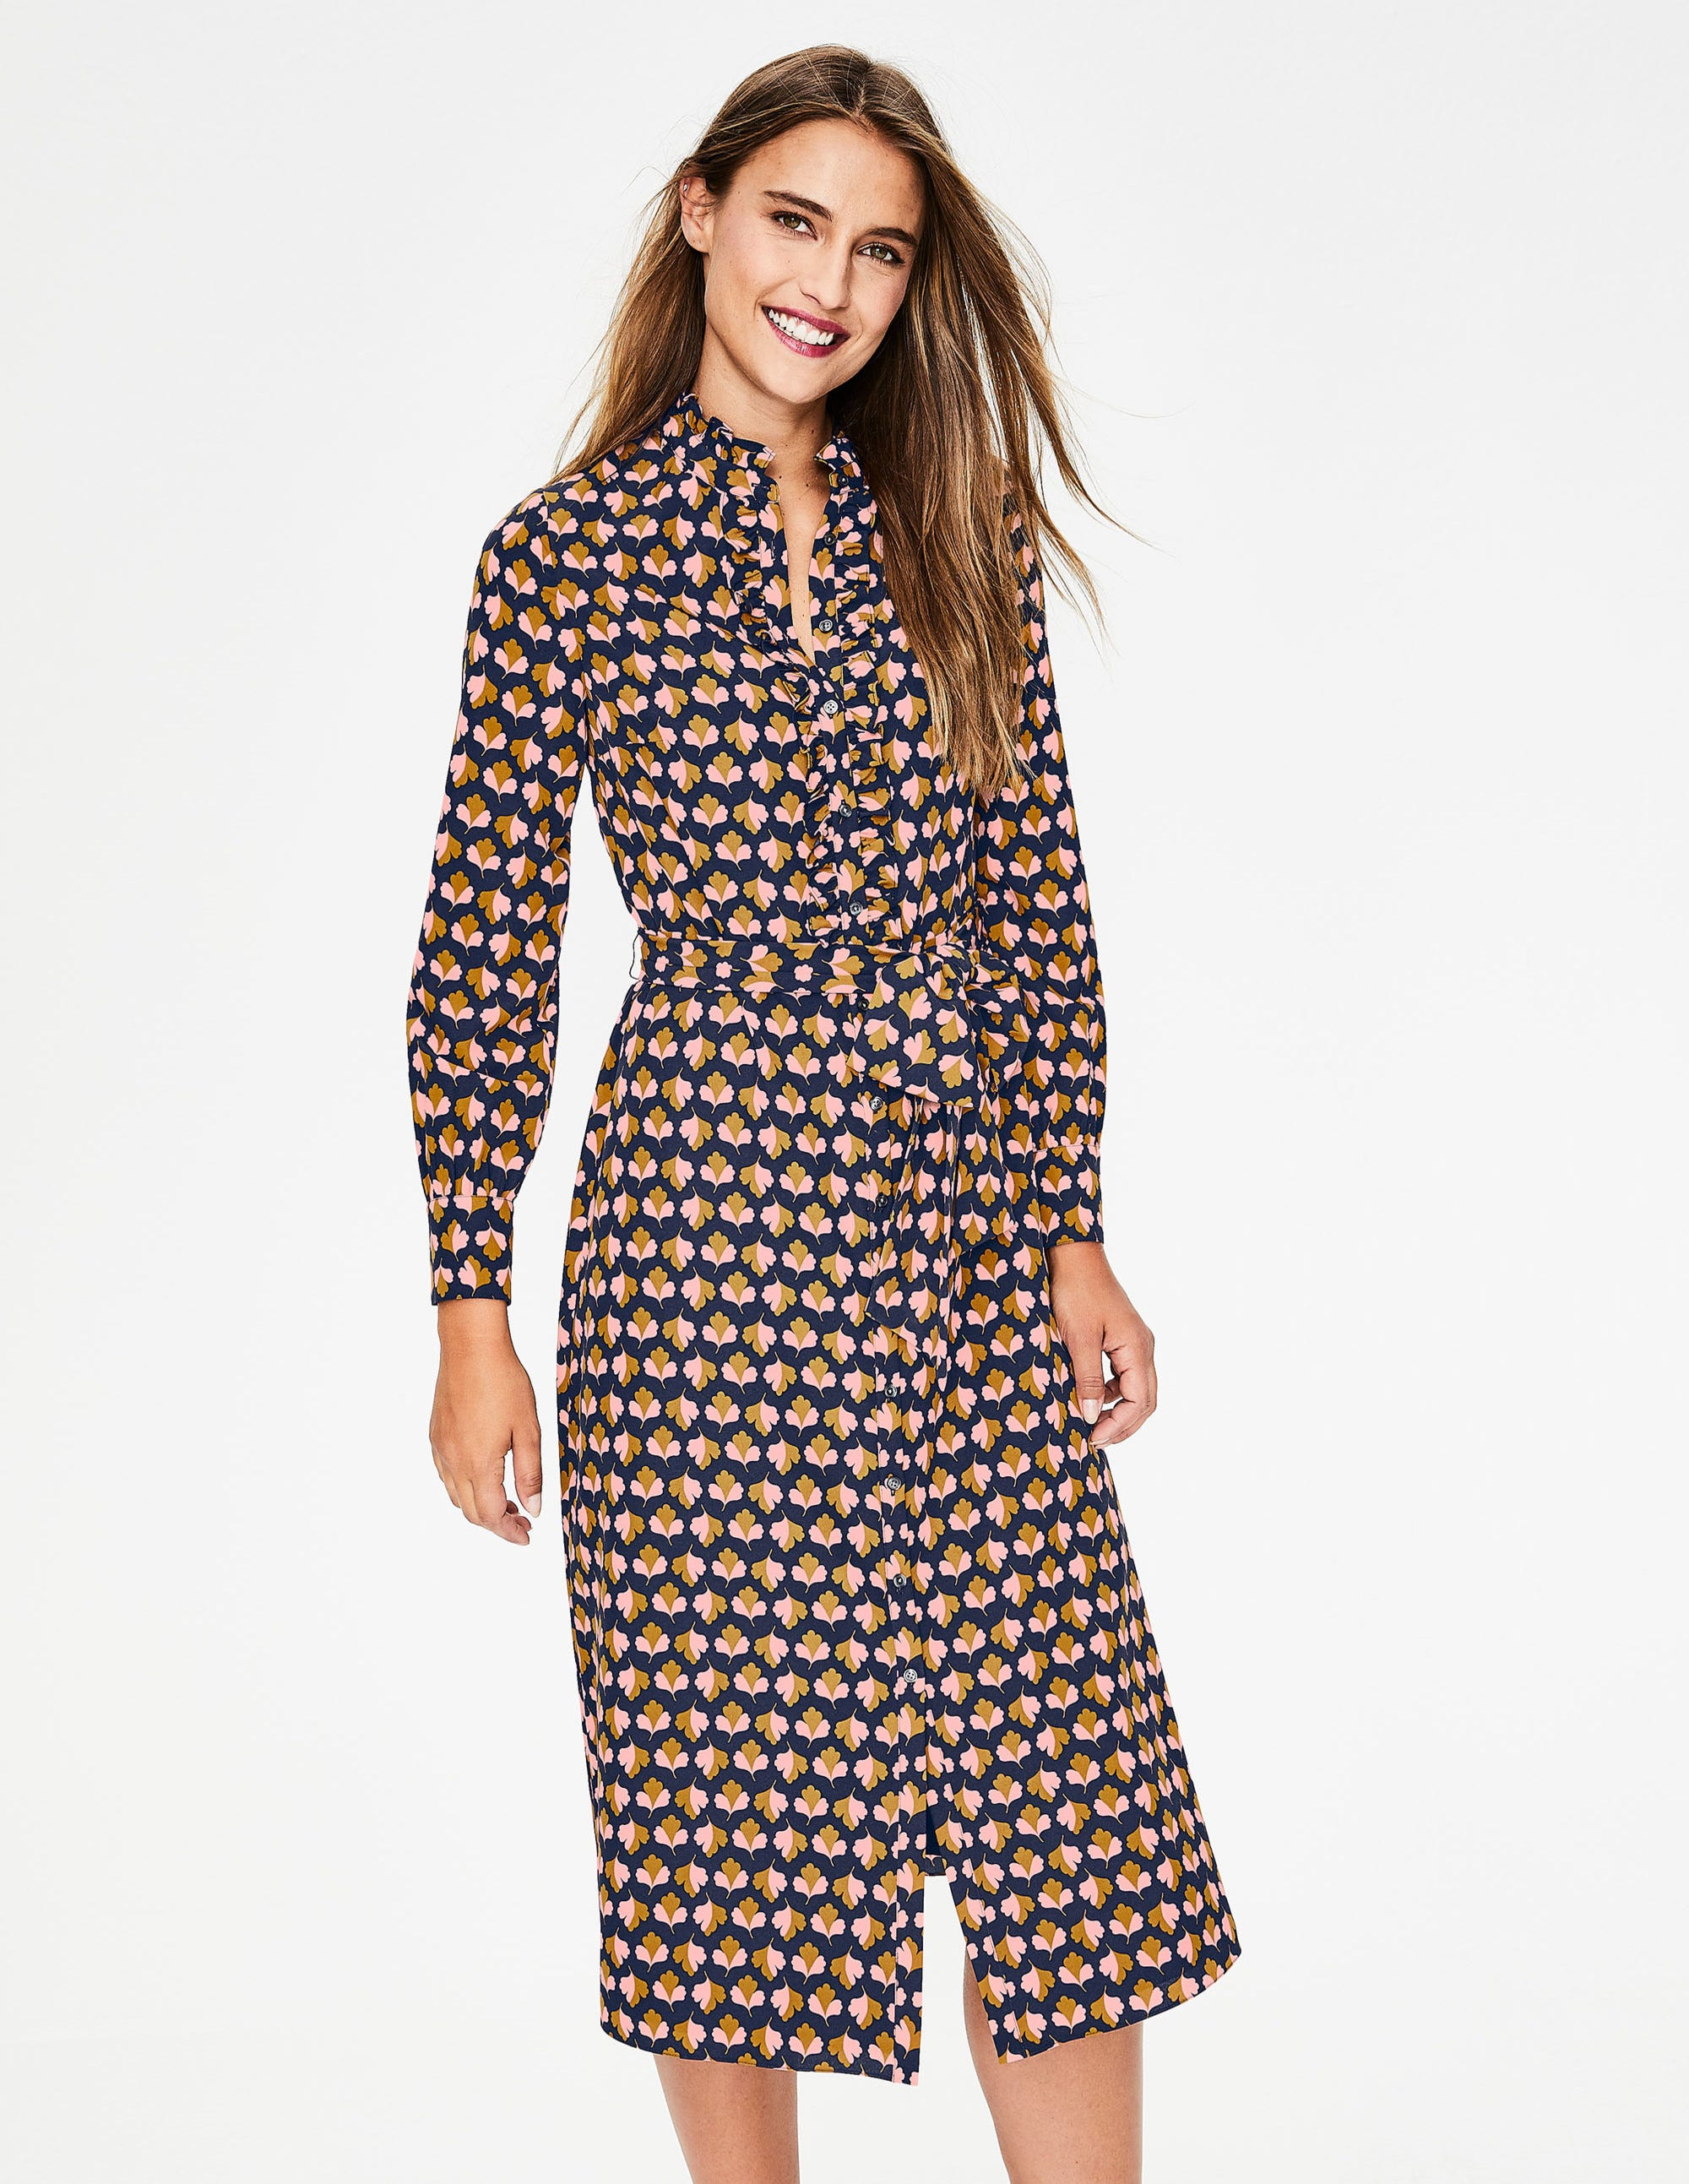 3345af89d9 Shop Boden Shirtdress for Women - Obsessory